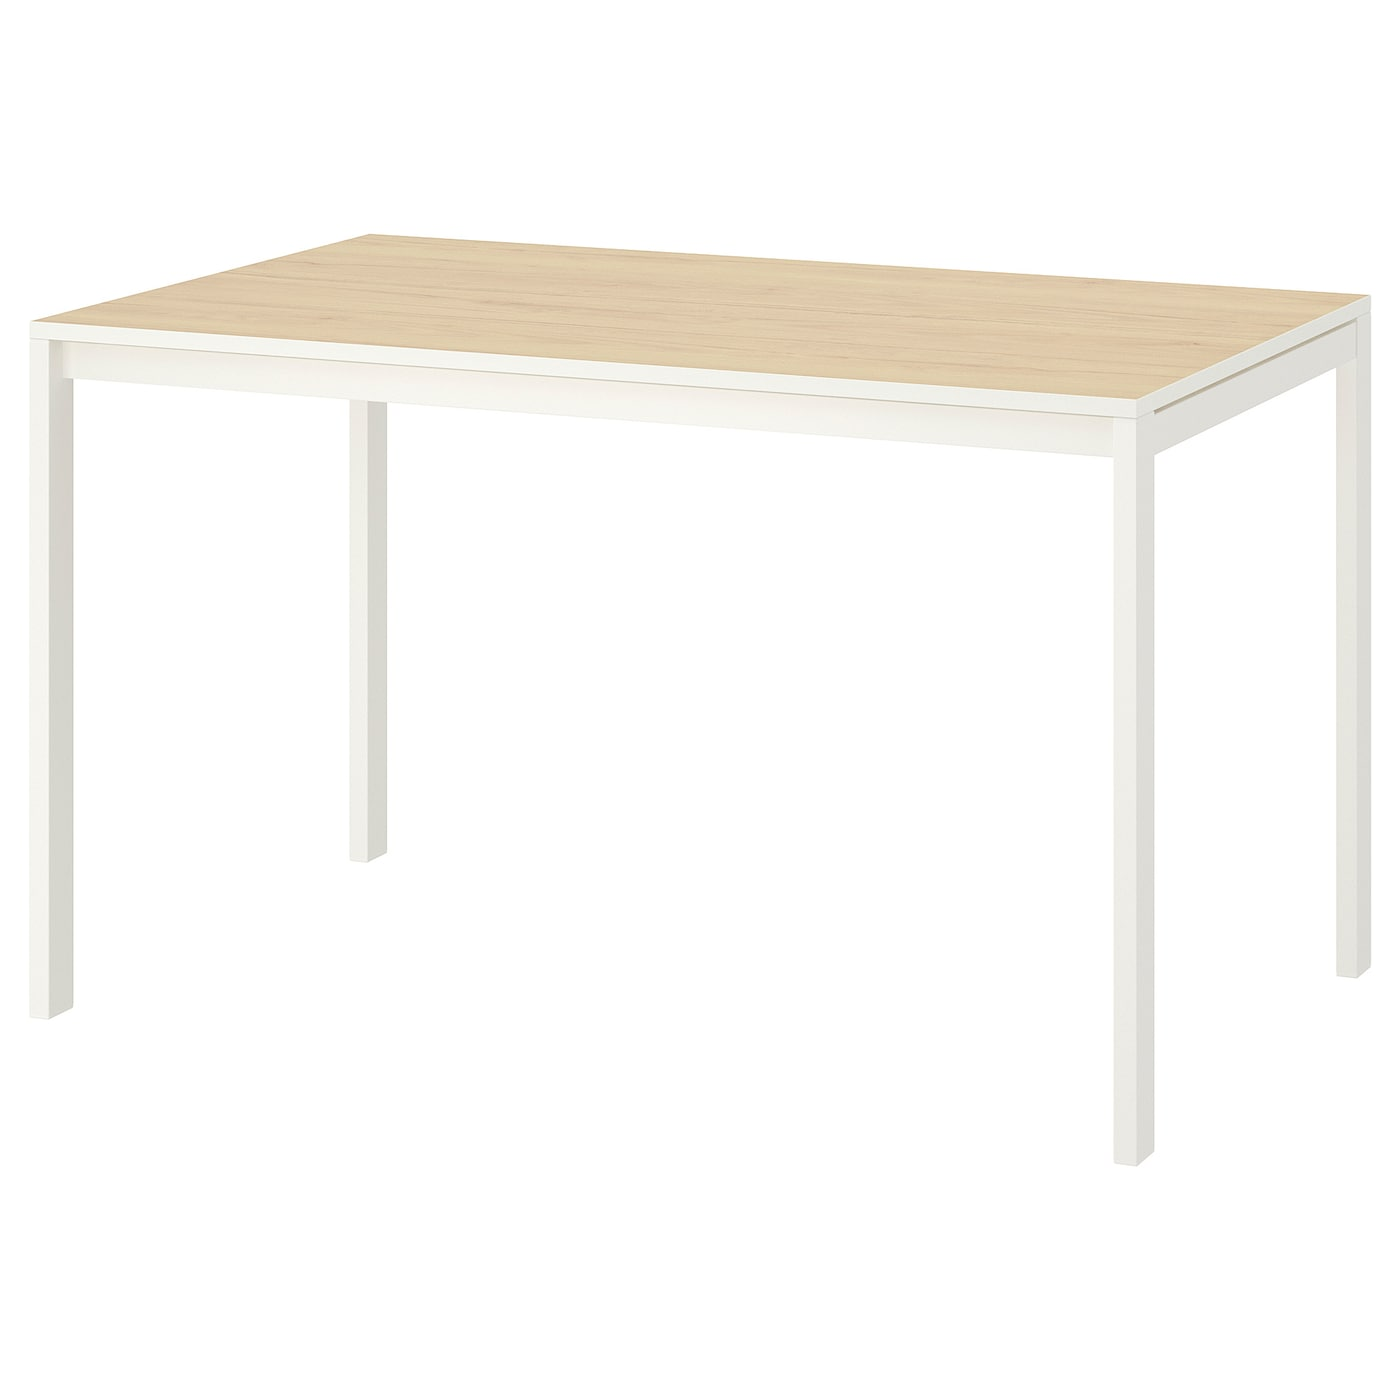 IKEA MELLTORP table The table is available in 2 sizes, seating 2-4 people.